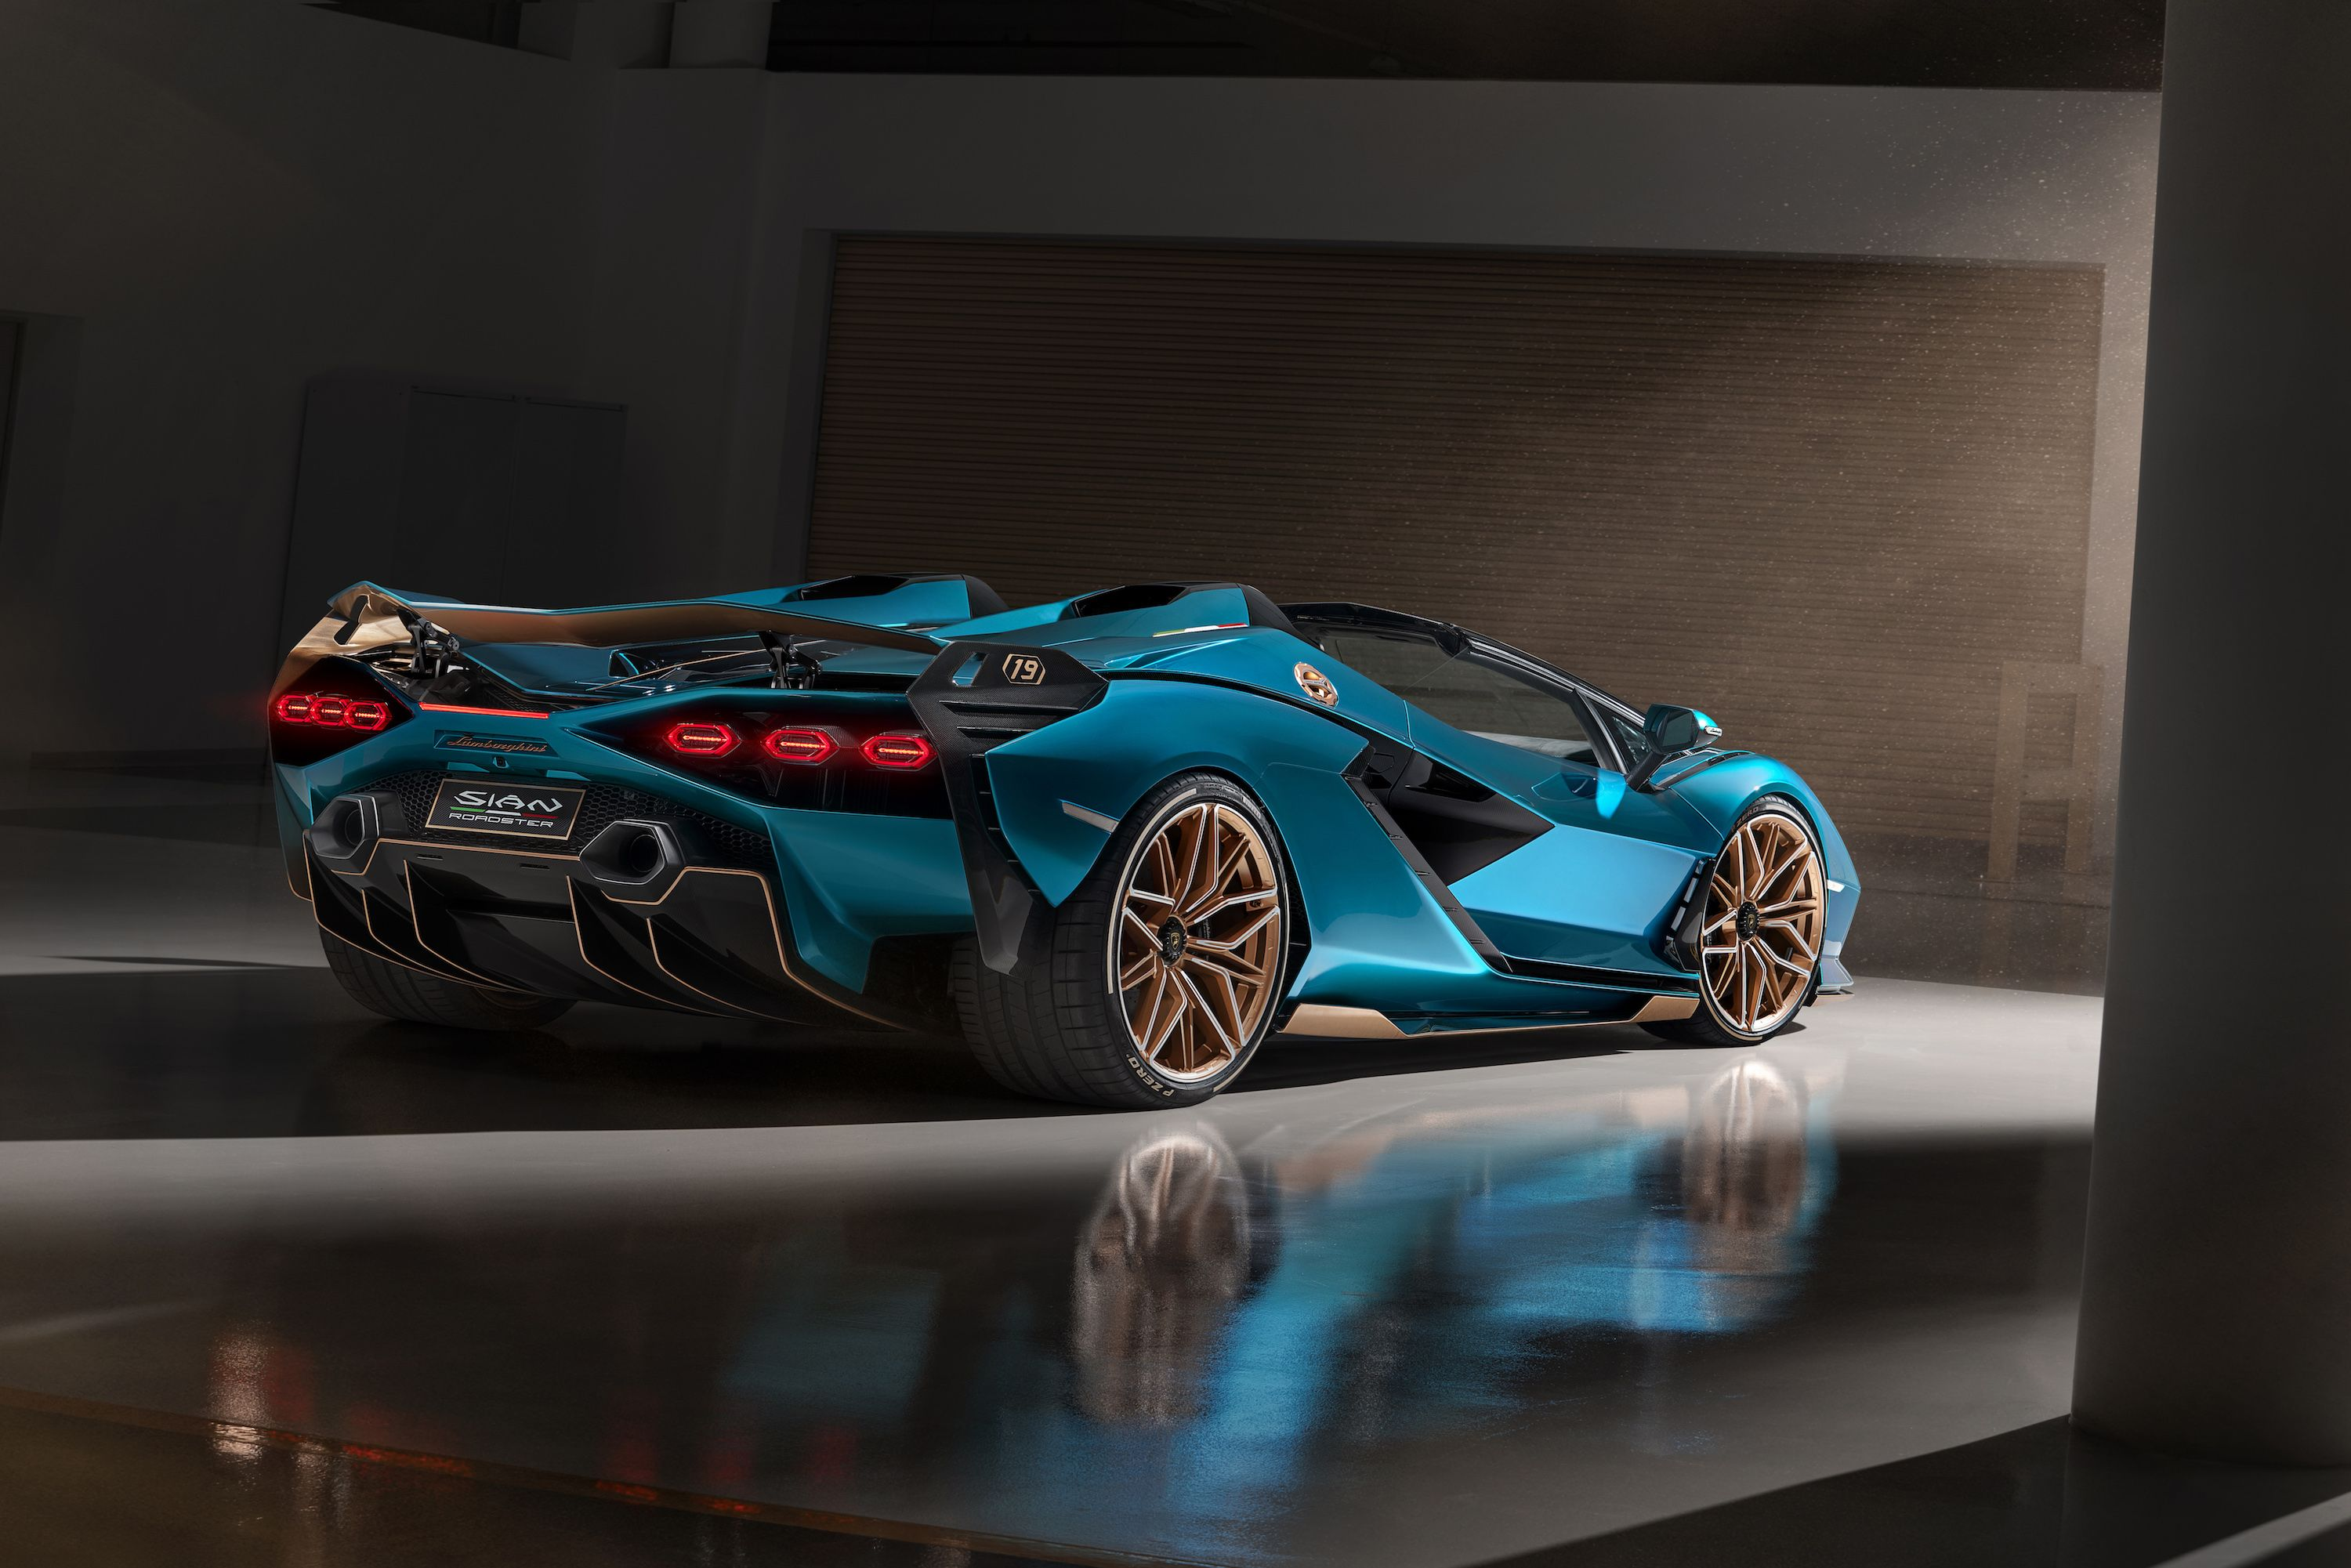 The 819-HP Lamborghini Sián Roadster Has Arrived and it's Already Sold Out